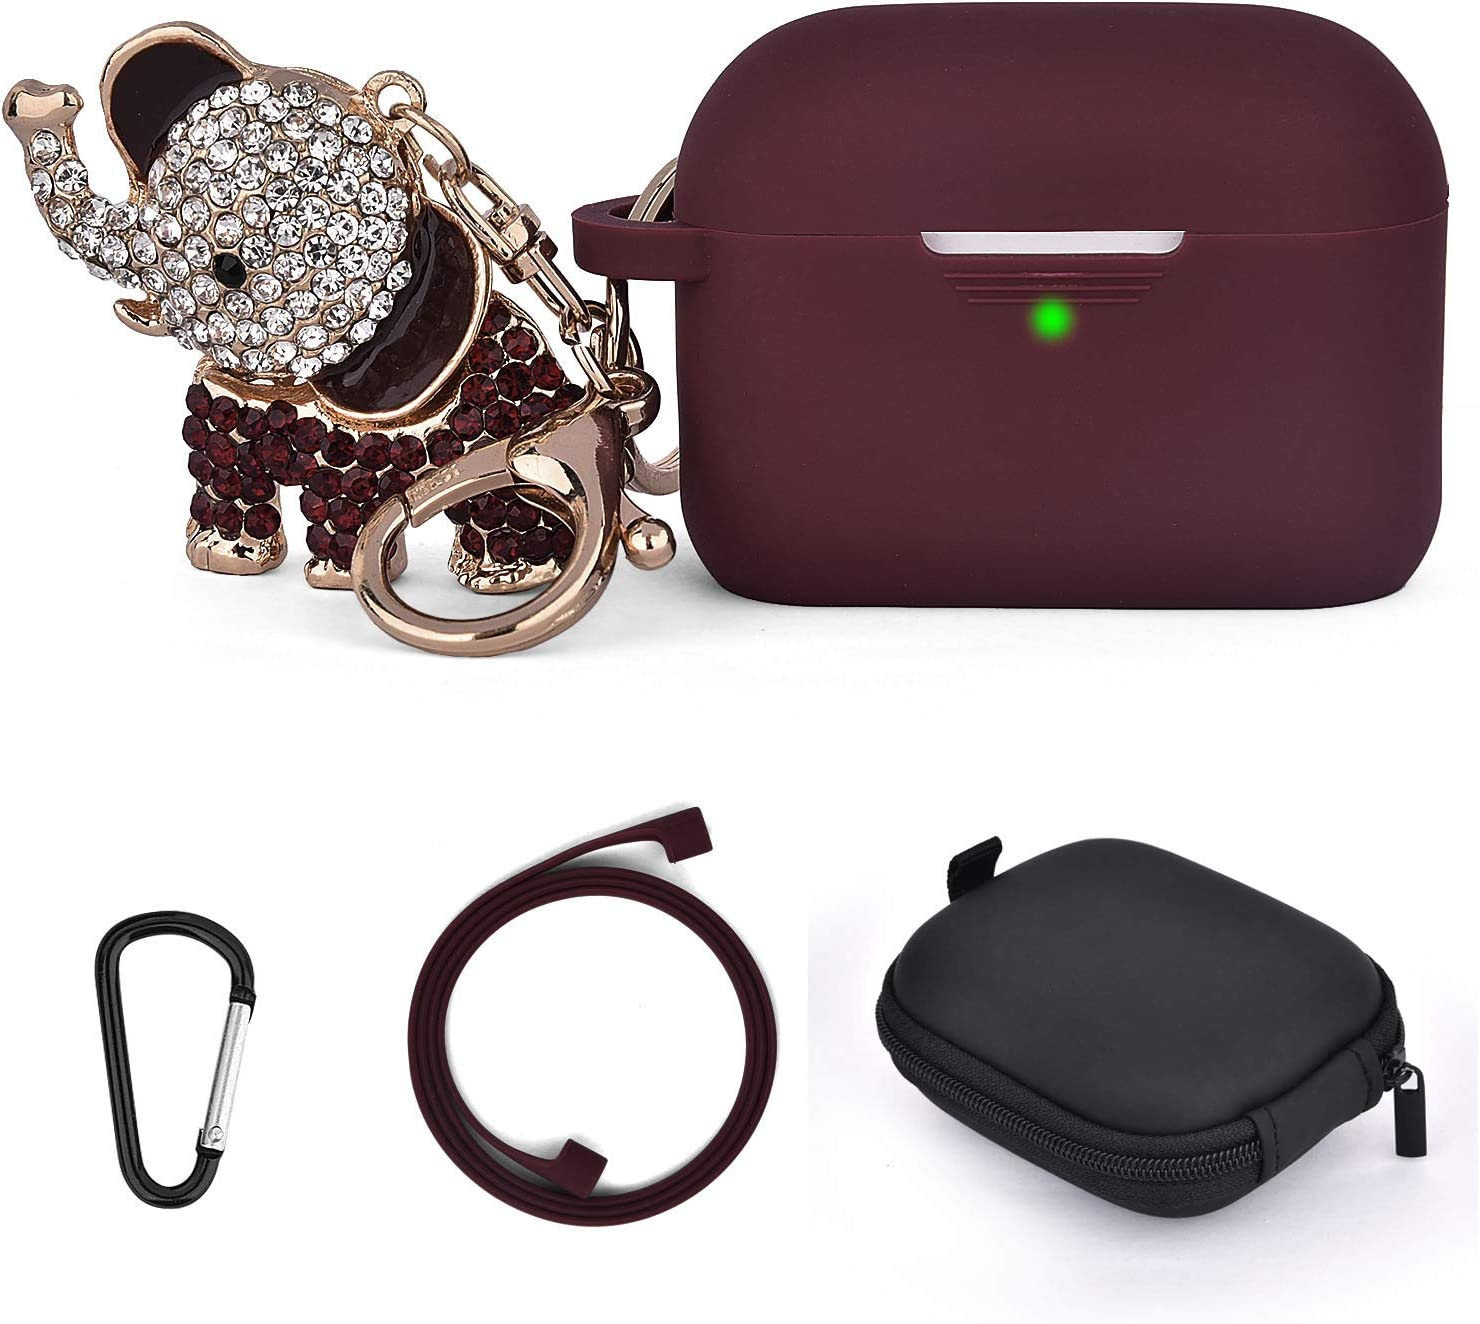 Airpods Pro Case Cute, 5 in 1 Airpod Pro Protective Cases Silicone with Bling Elephant Keychain/Storage Box Compatible for Apple Airpods Pro Case Women Girls Men (Burgund)